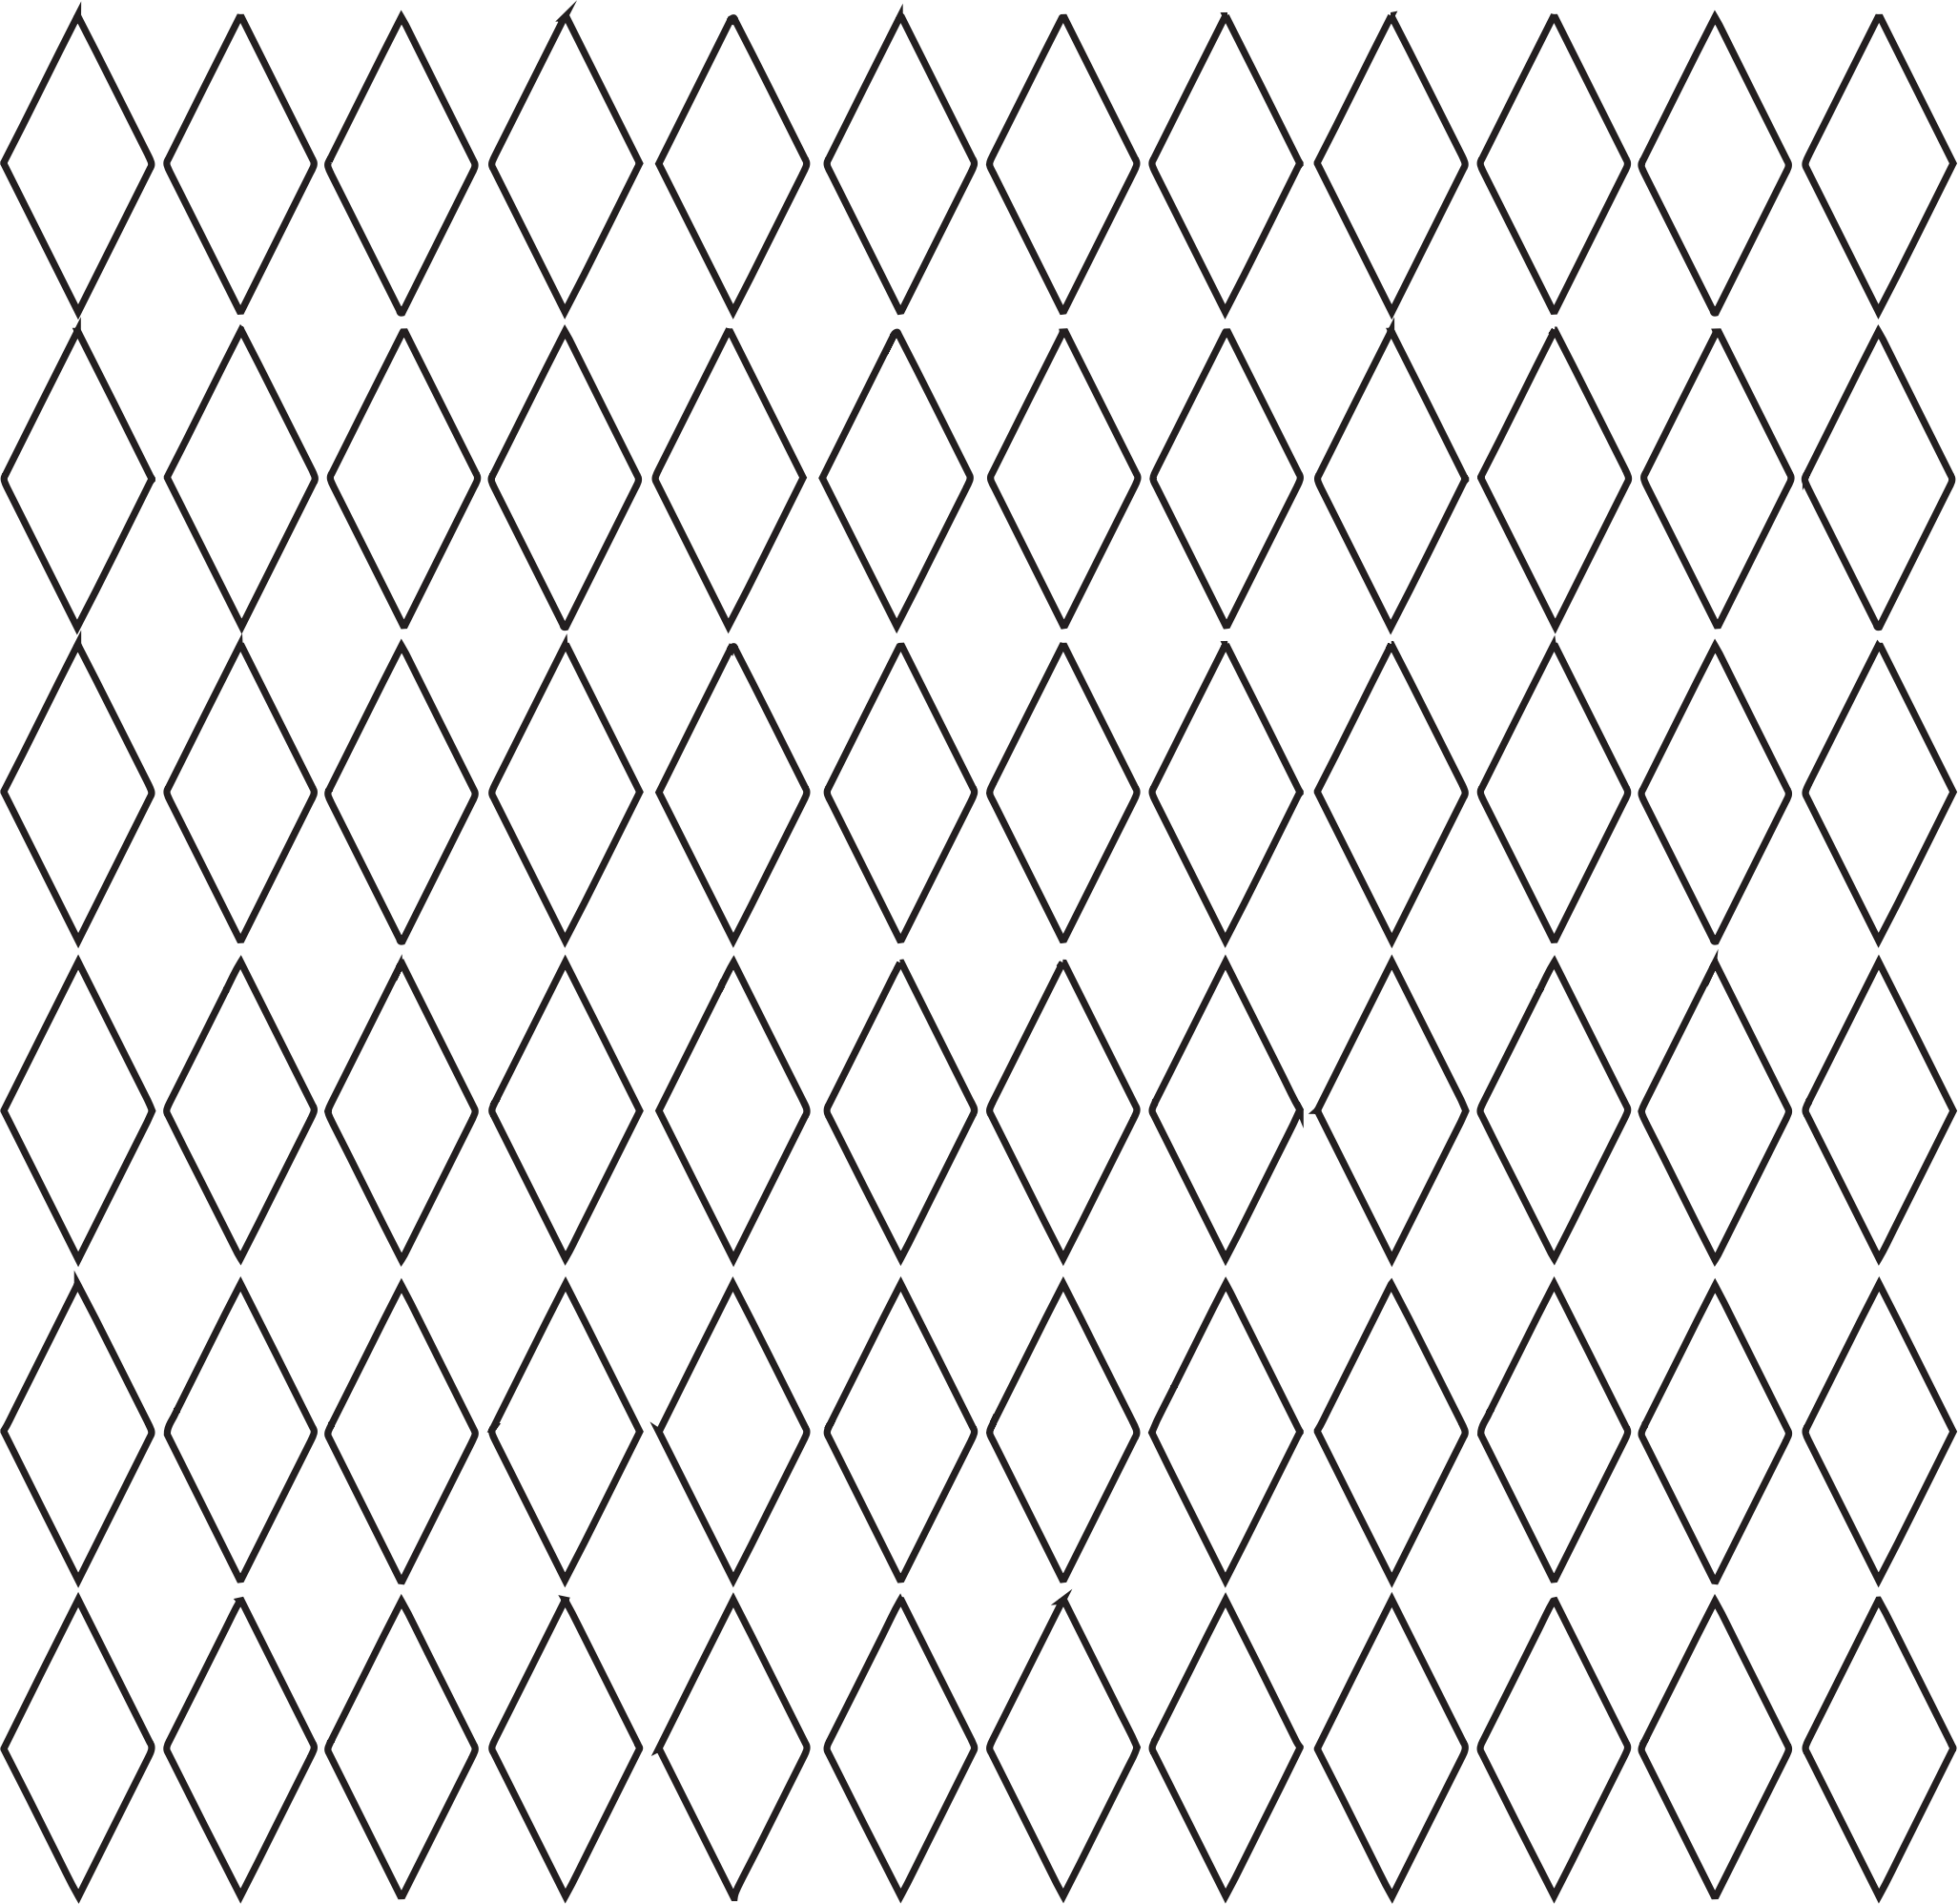 Diamond Grid Pattern - No Color 1 by TikiGiki